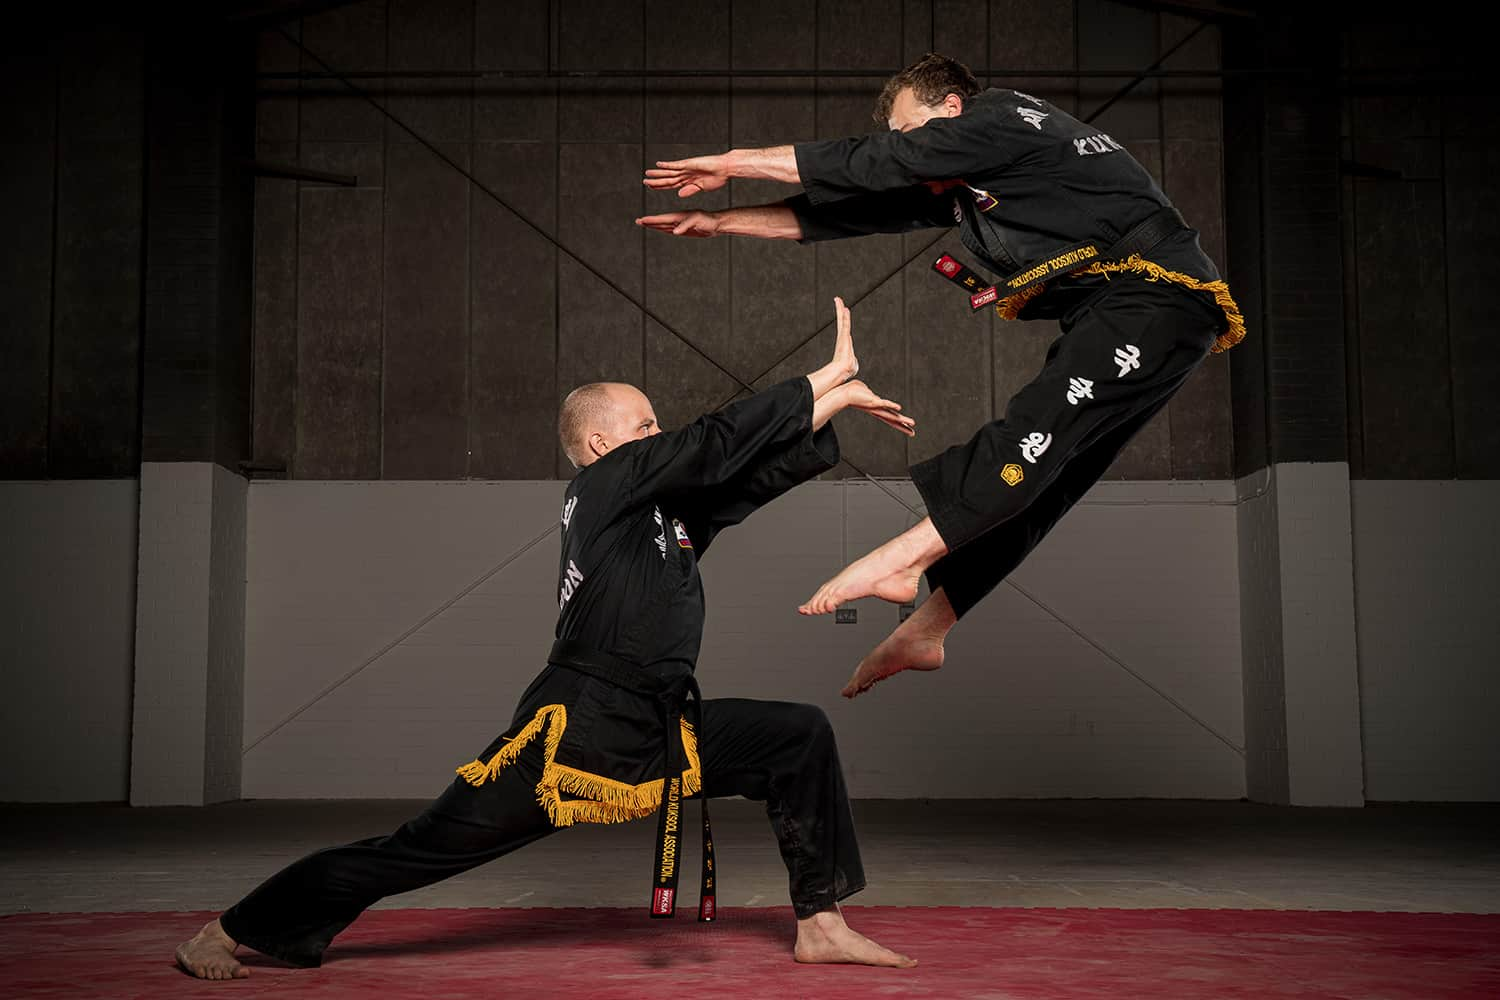 Ronan Roy Kuk Sool Won black belt training in Kirkcaldy